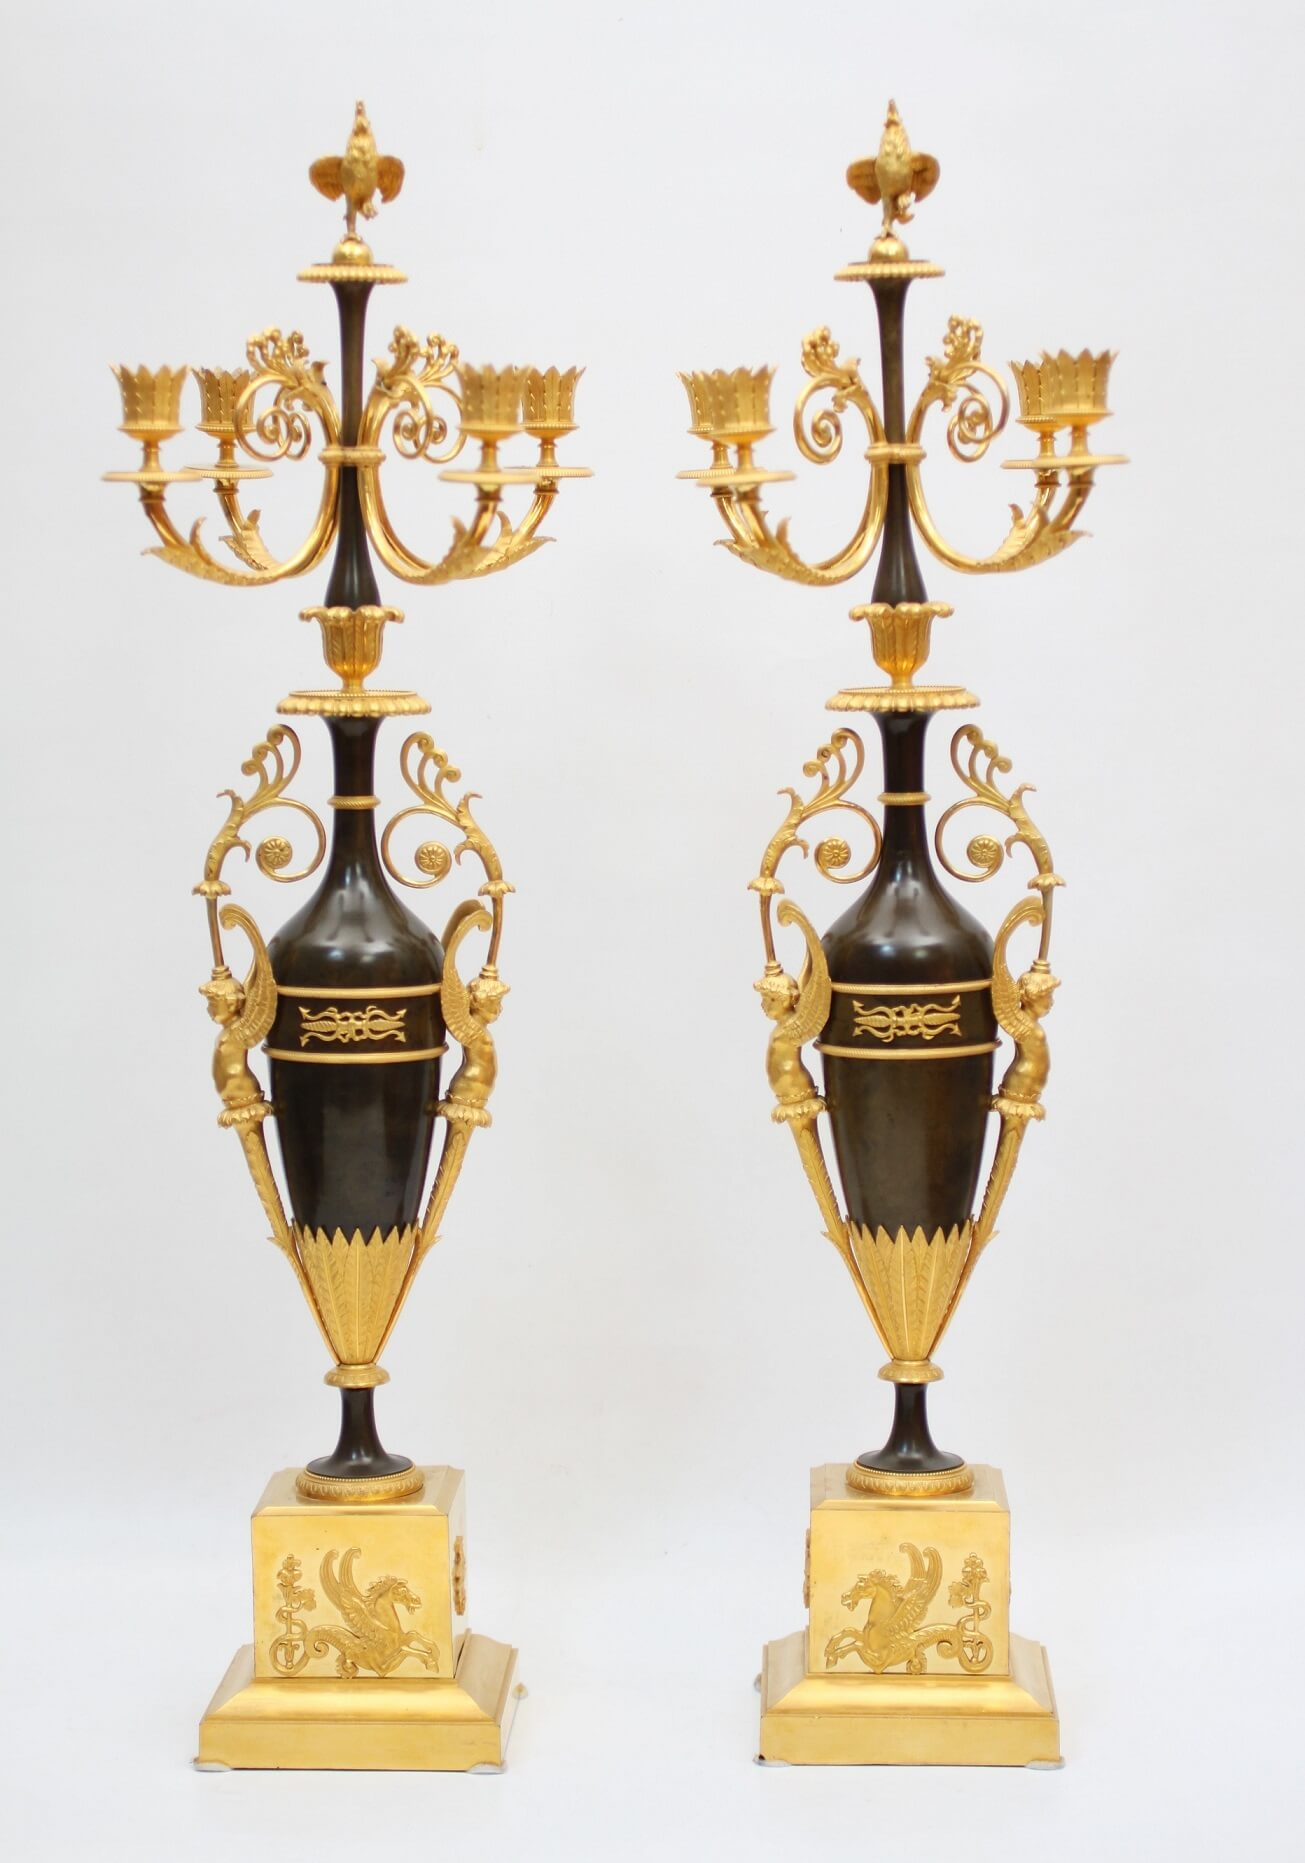 French Patinated Bronze Ormolu Empire Candelabra